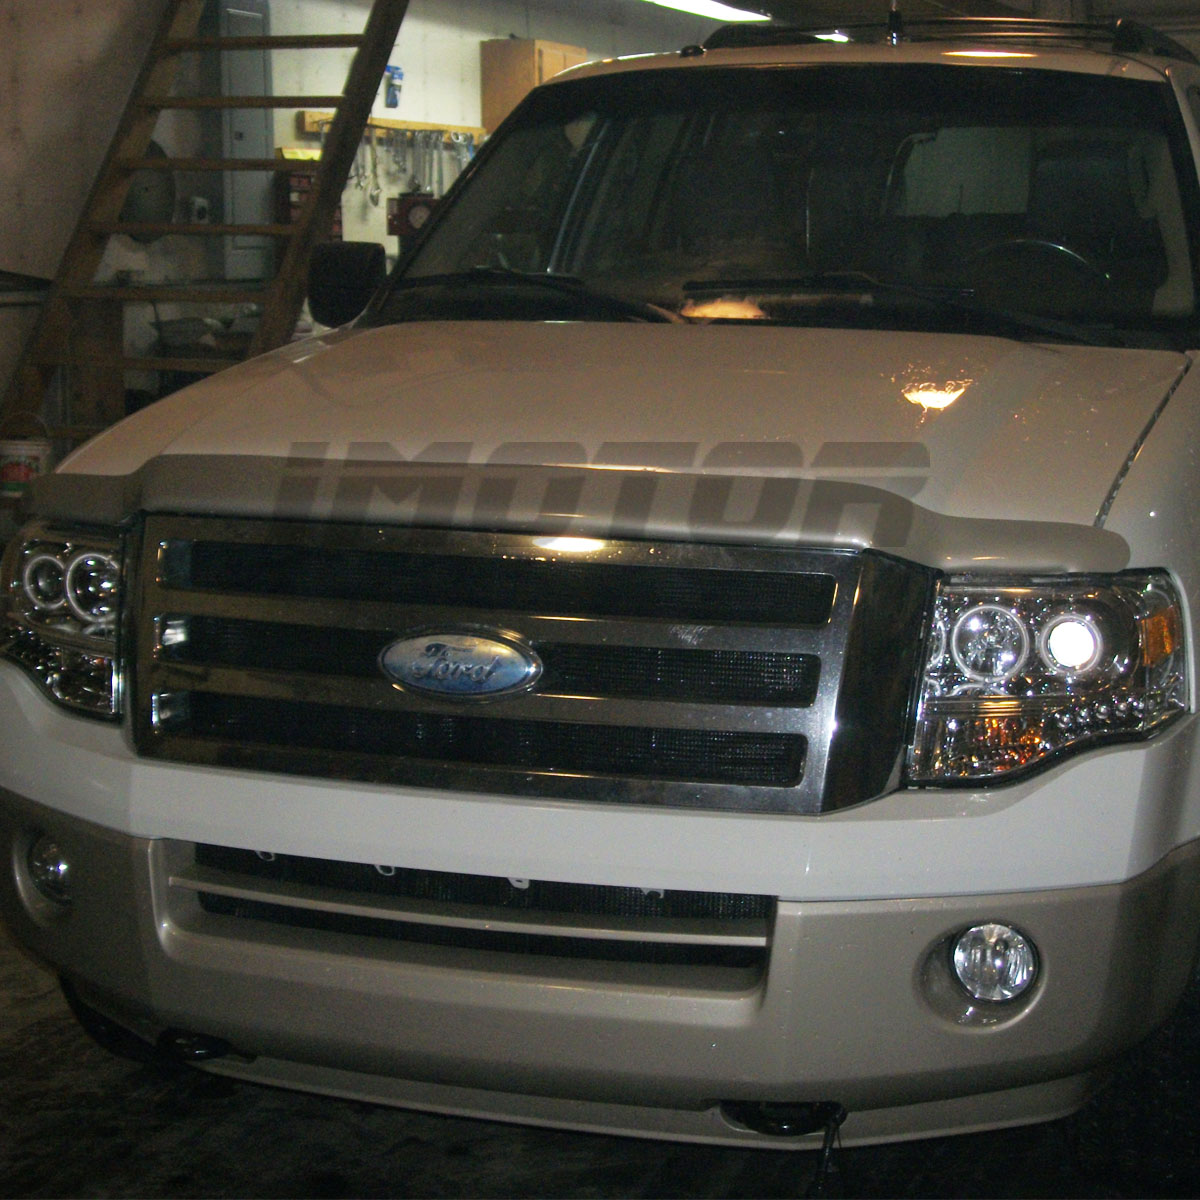 Ford Expedition 2008 For Sale: [Dual CCFL Halo] 2007-2014 Ford Expedition Chrome LED